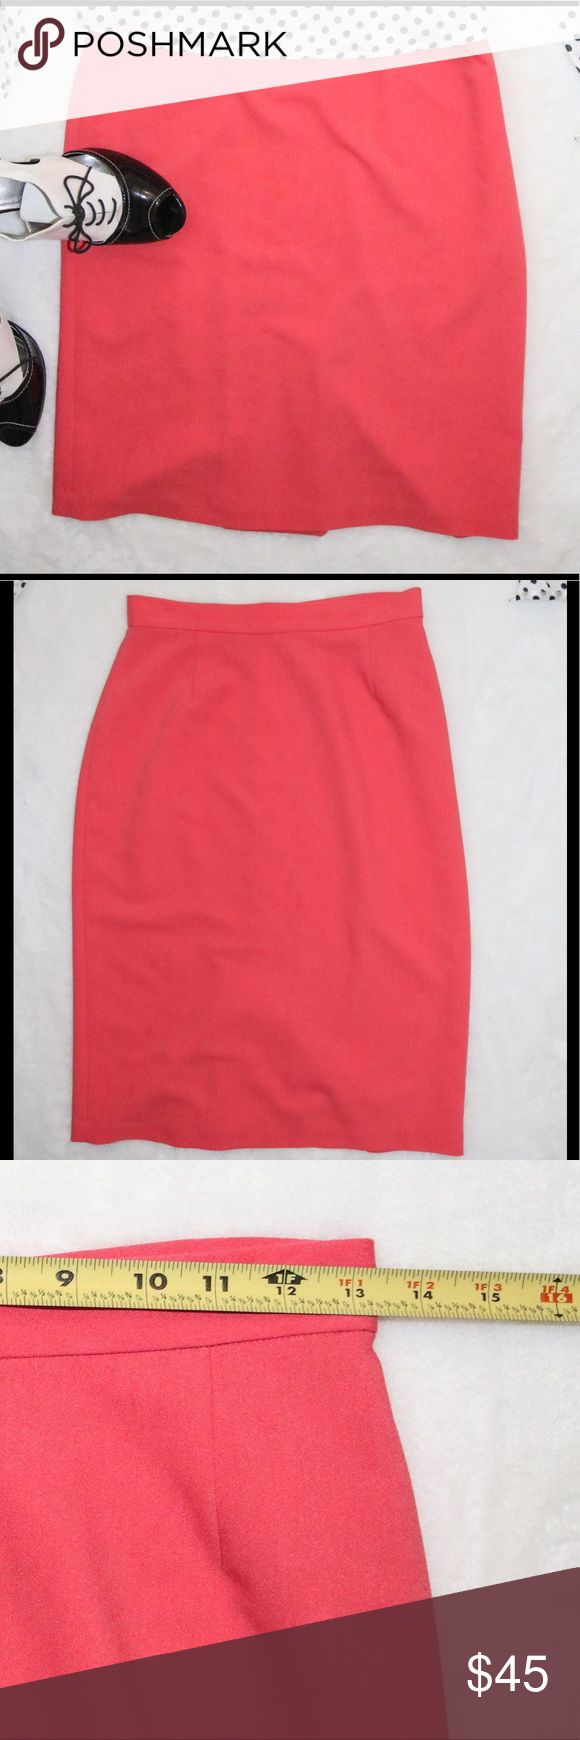 RAOUL  coral pencil skirt sz 4 RAOUL coral pencil skirt  sz 4   79% polyester 17% rayon 4% spandex  waist 26 inches , length 24.5 inches  Excellent Condition raoul Skirts Pencil